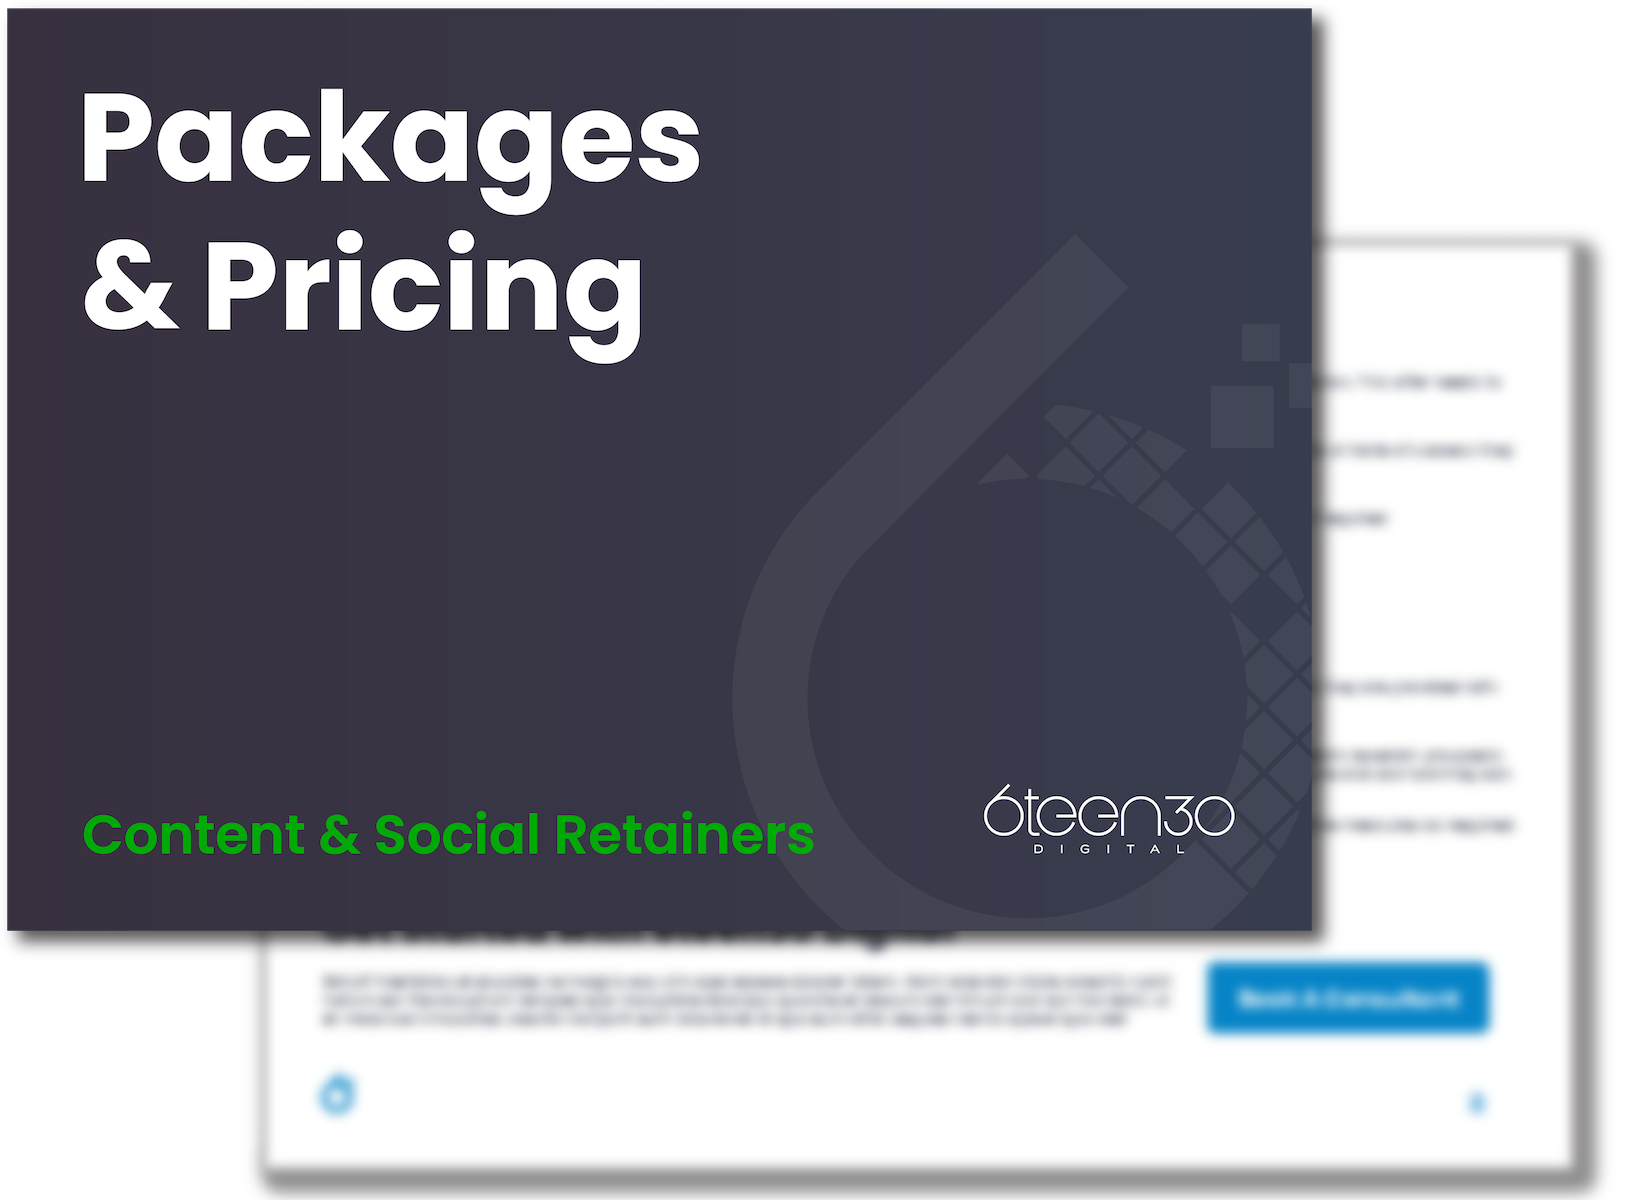 6teen30 - Content Social - Pricing And packages - No Space